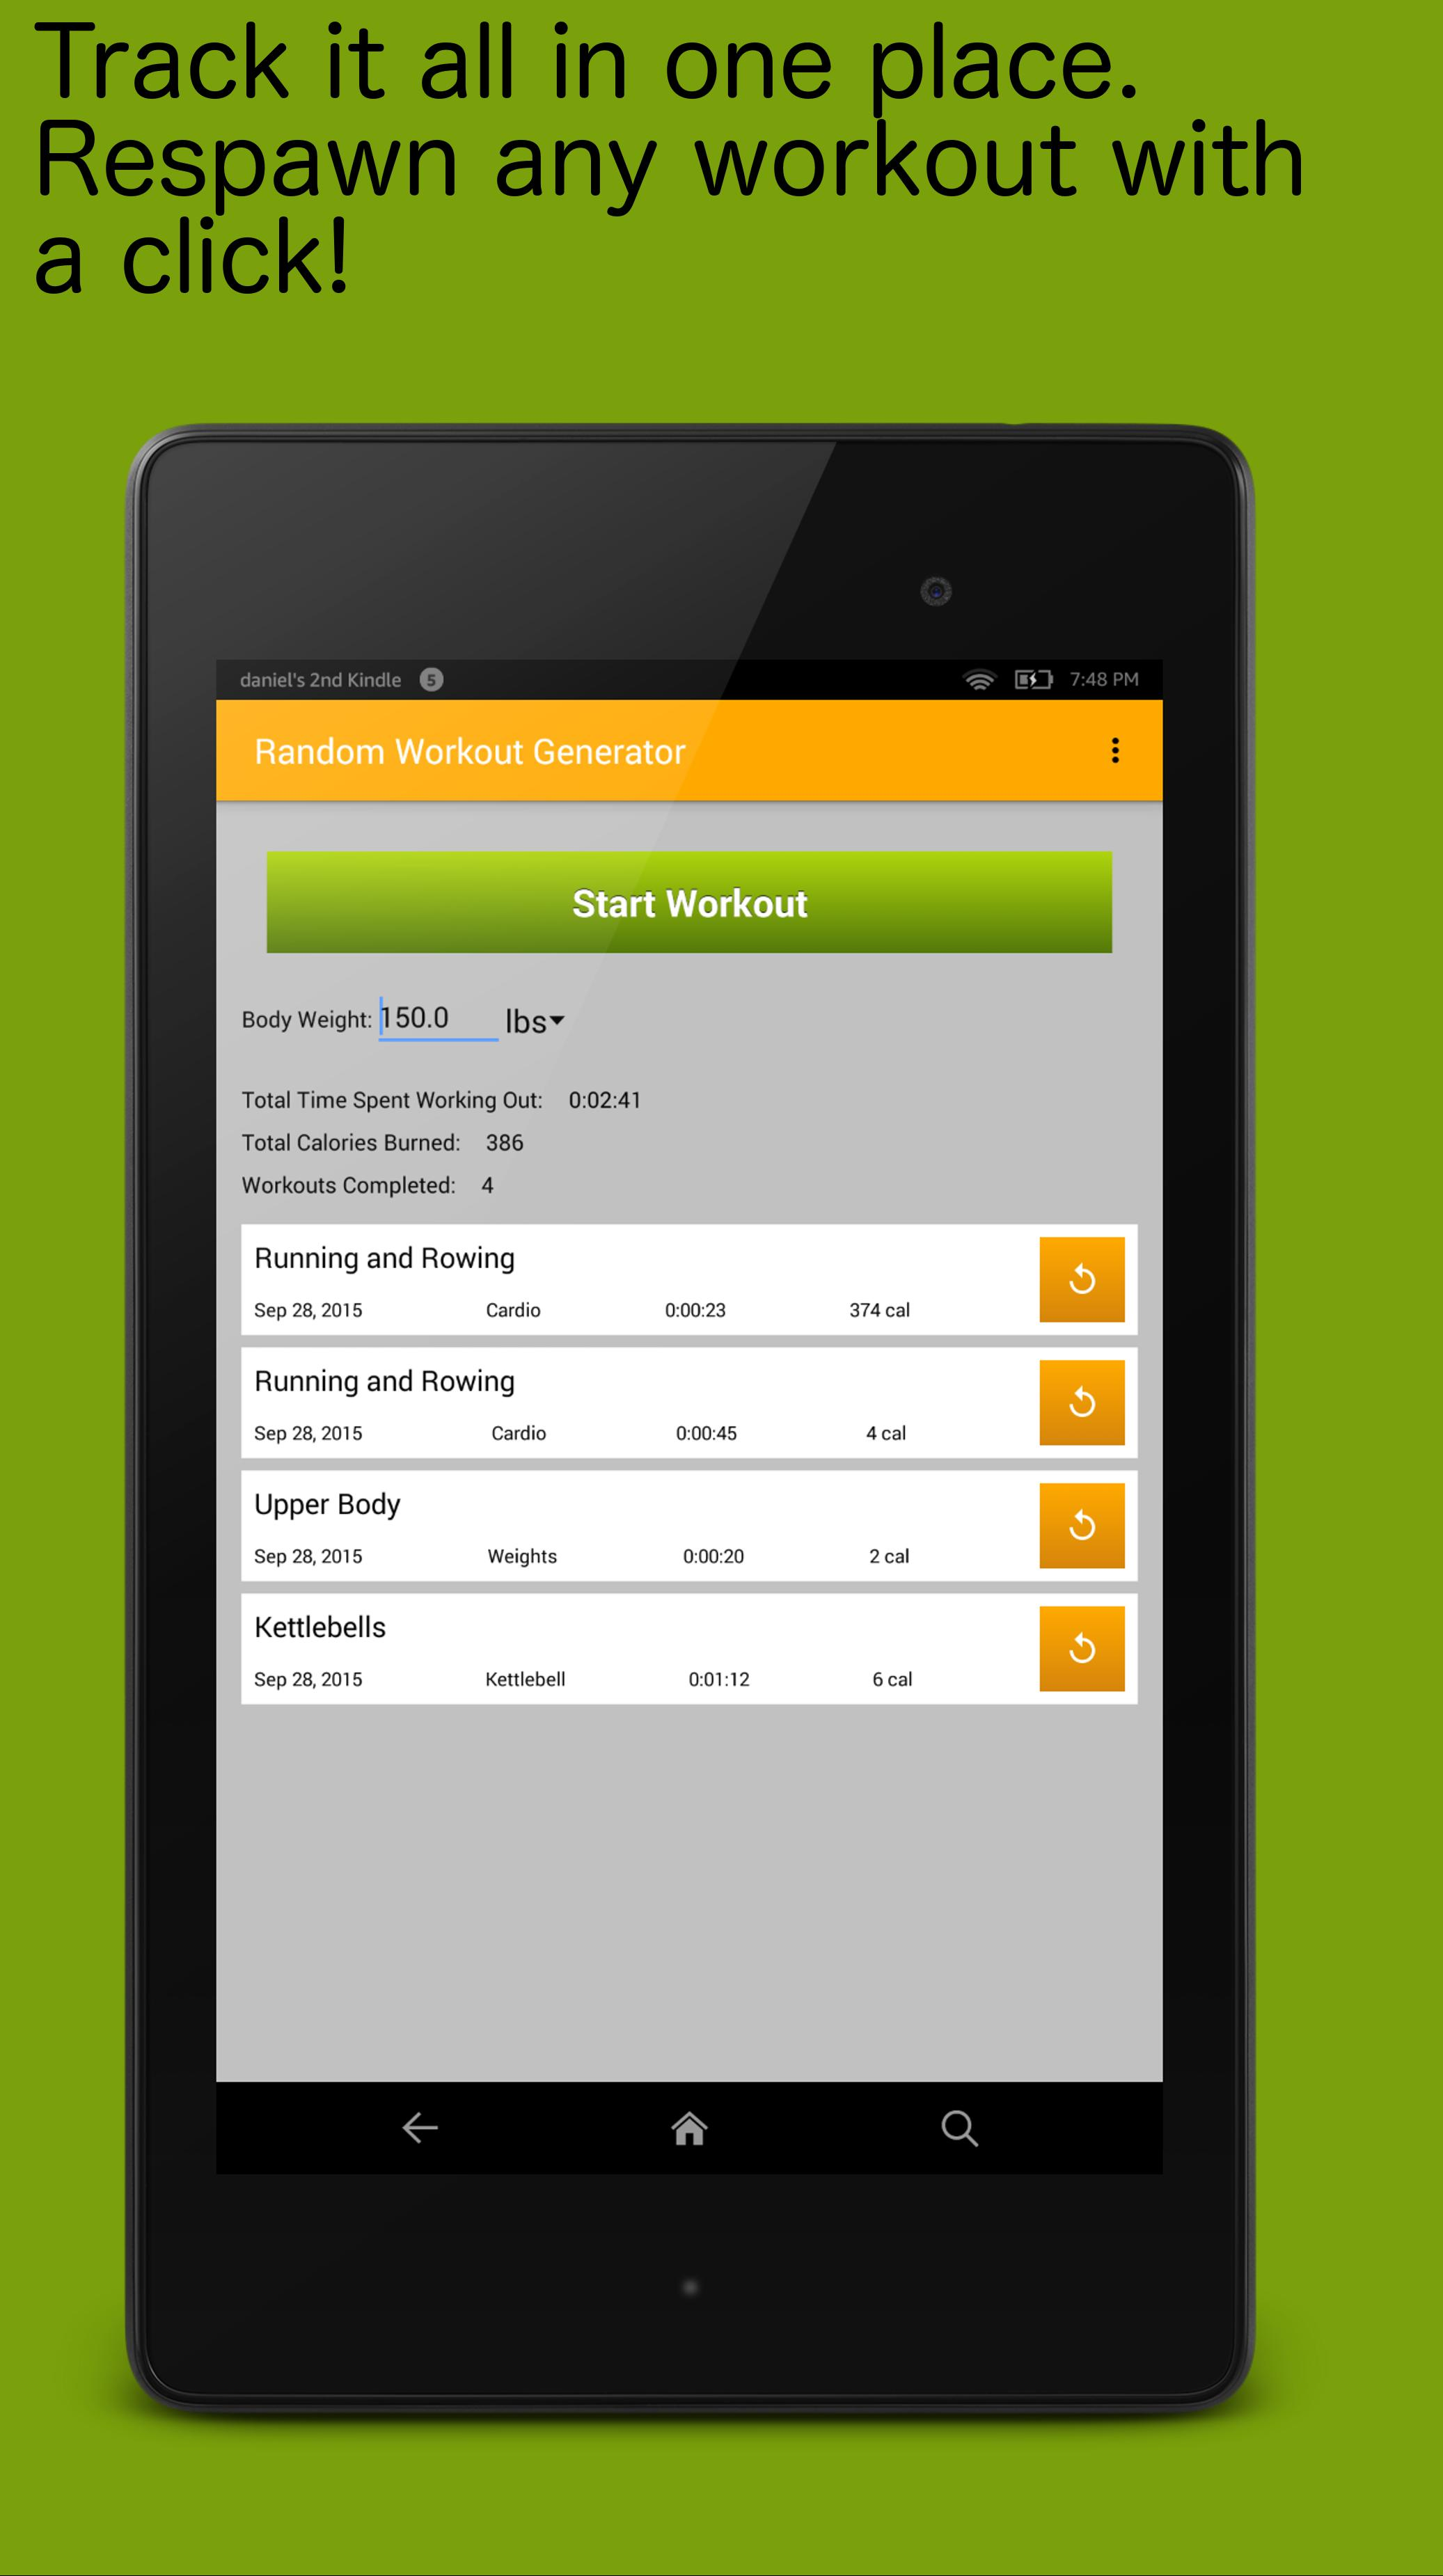 Random Workout Generator for Android - APK Download